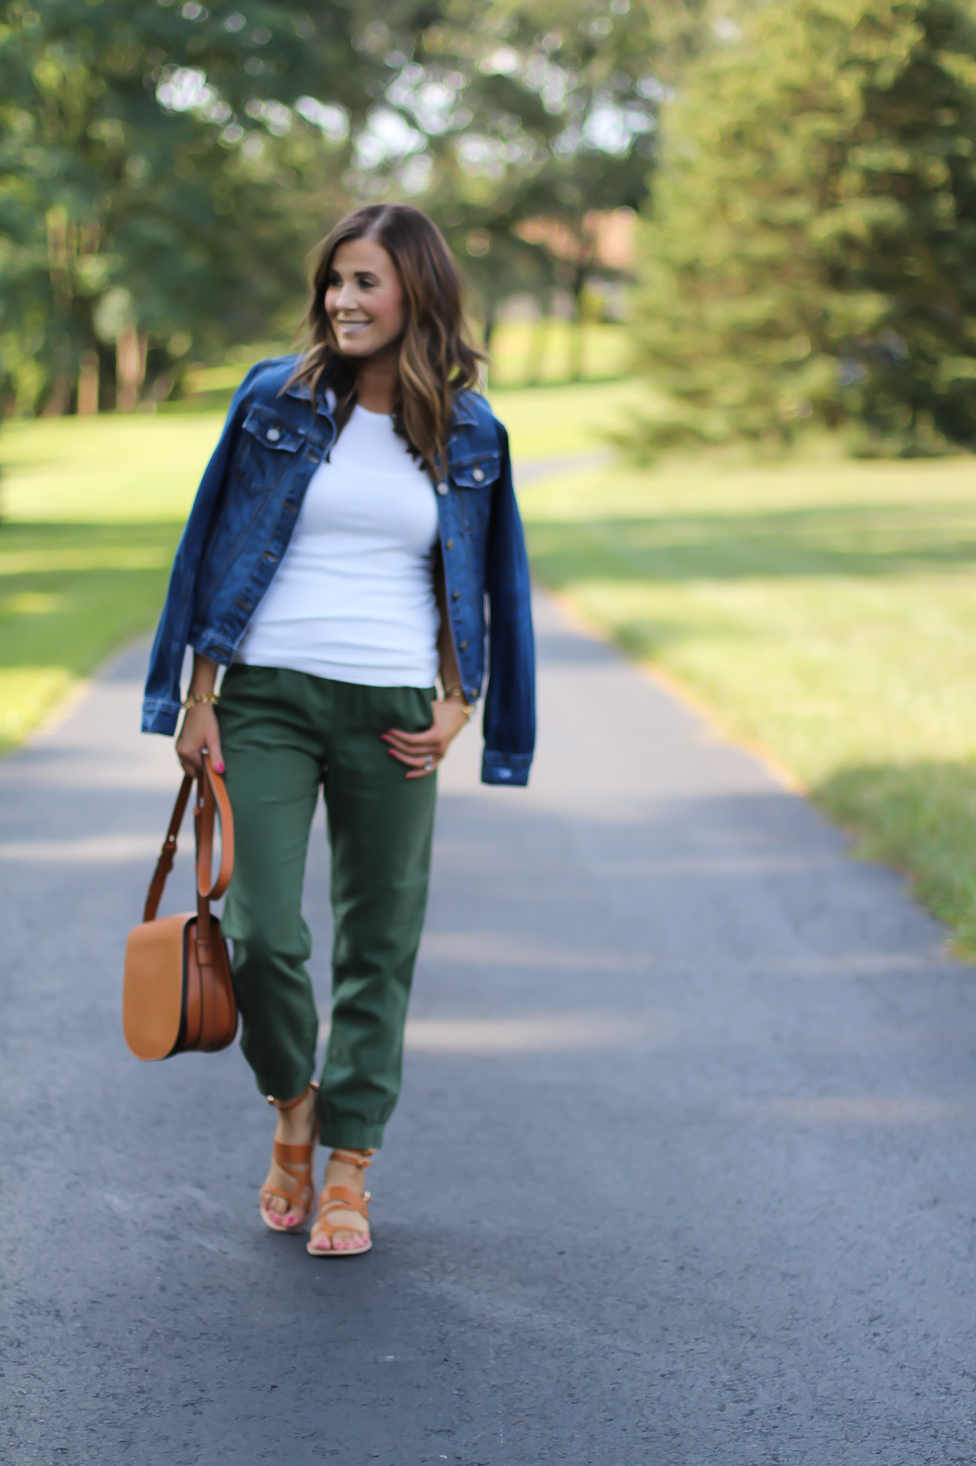 Army Green Joggers, White Sleeveless Shell Tee, Gladiator Sandals, Saddle Bag, J.Crew, tory Burch, Ancient Gladiator 1